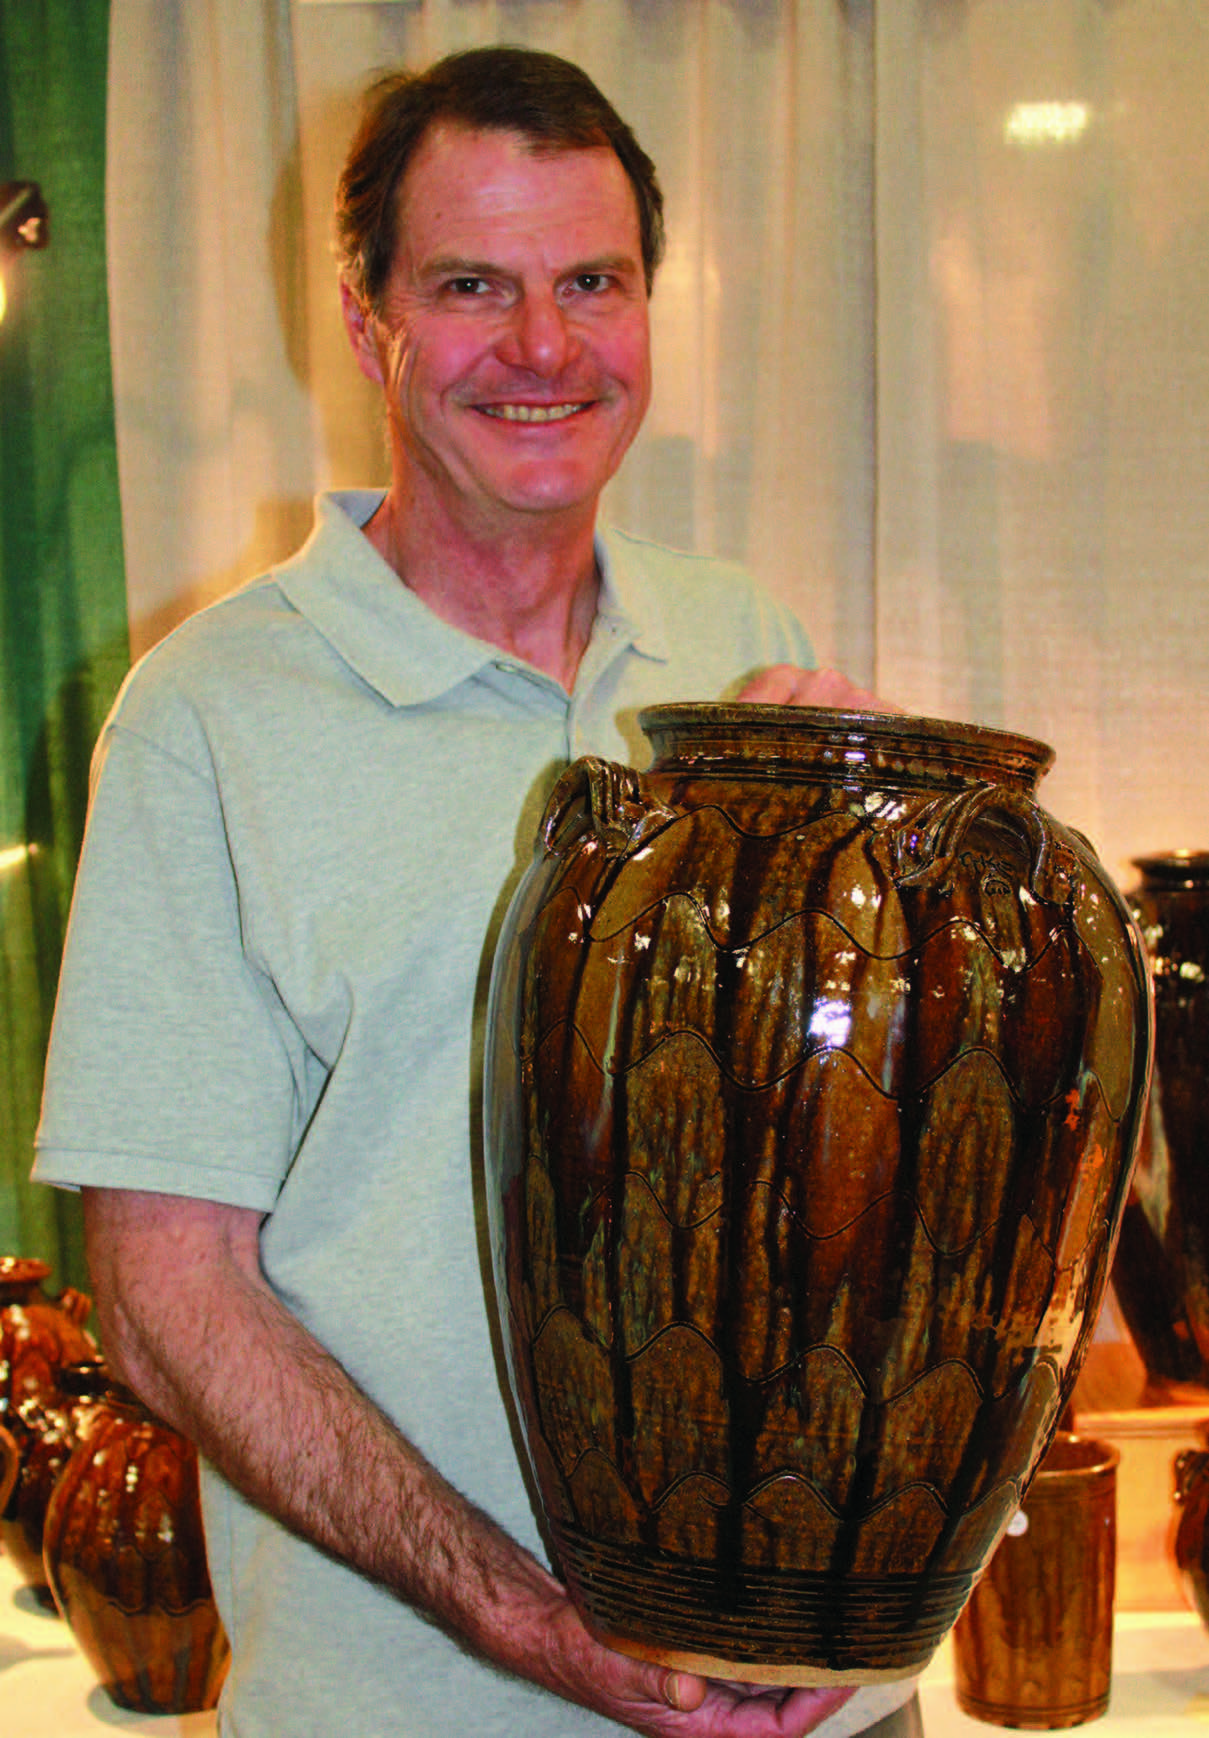 Ellington holding a five-gallon jar he made. The alkaline glaze traditionally used by Catawba Valley potters like Ellington derives its vivid, varied color from the area's mineral-laden soils. Catawba Valley Pottery and Antiques Festival, Hickory, North Carolina, 2012. Photograph by Karen Duffy.